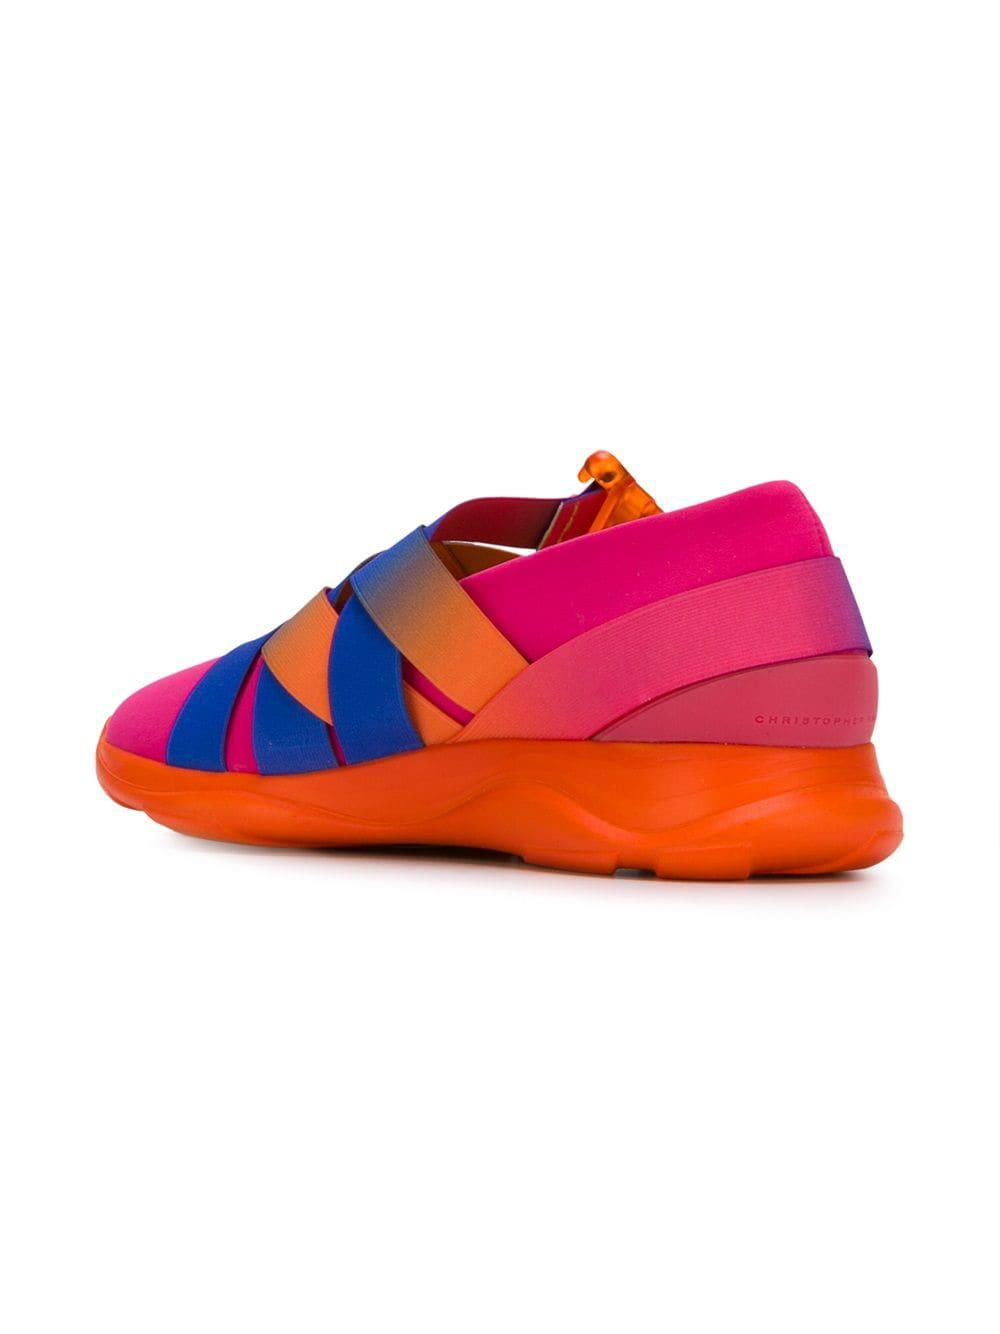 Christopher Kane Leather Cross Strap Sneakers in Pink (Blue)